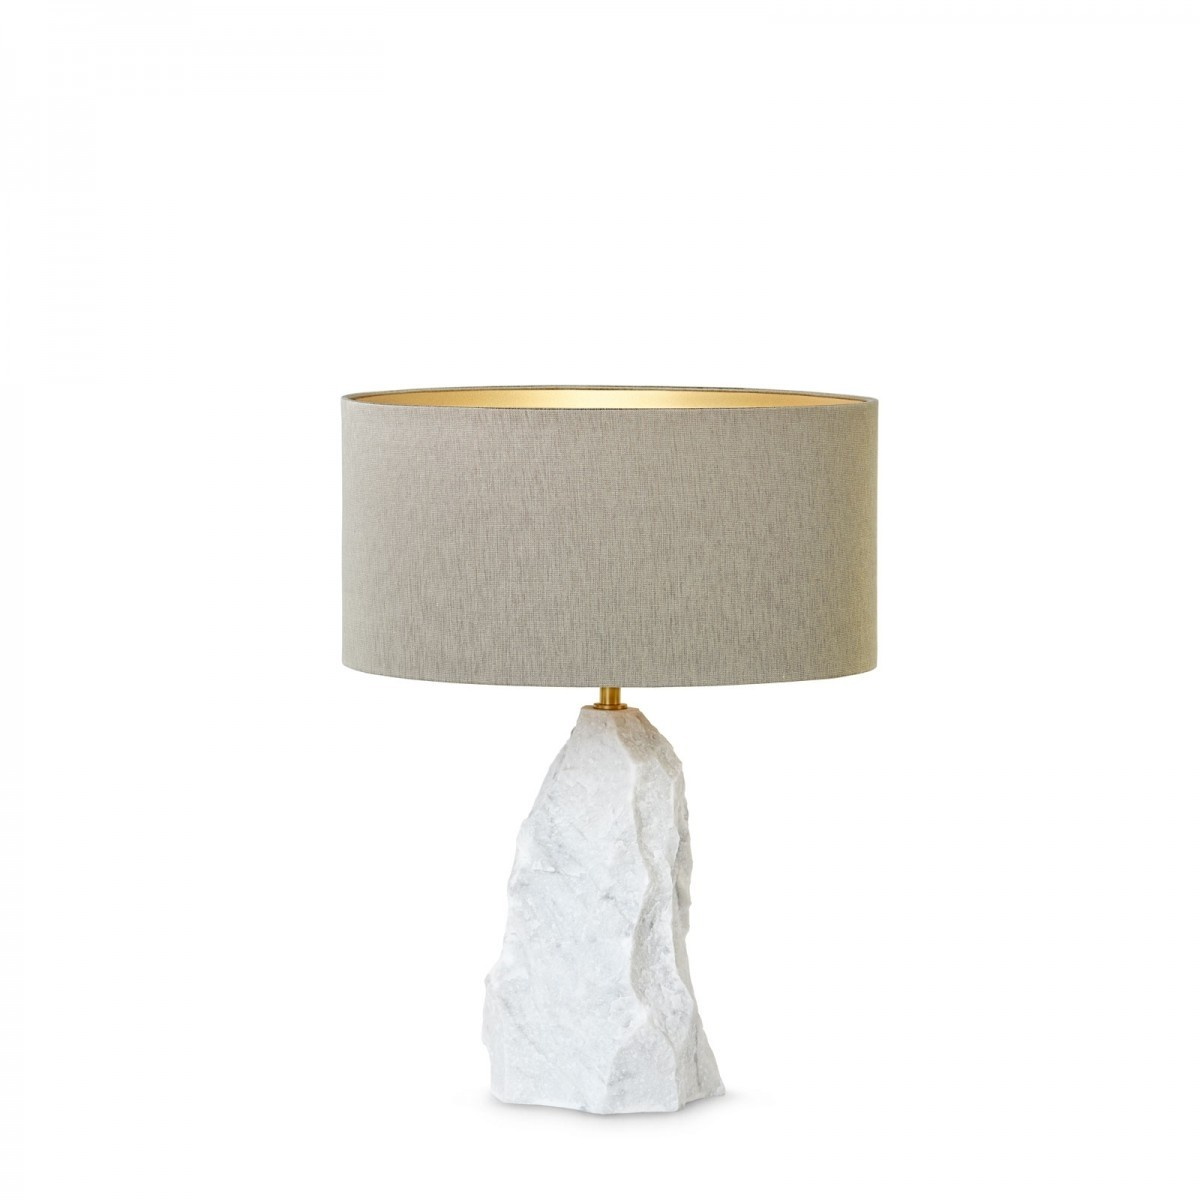 PICO TABLE LAMP - CUSTOMISE